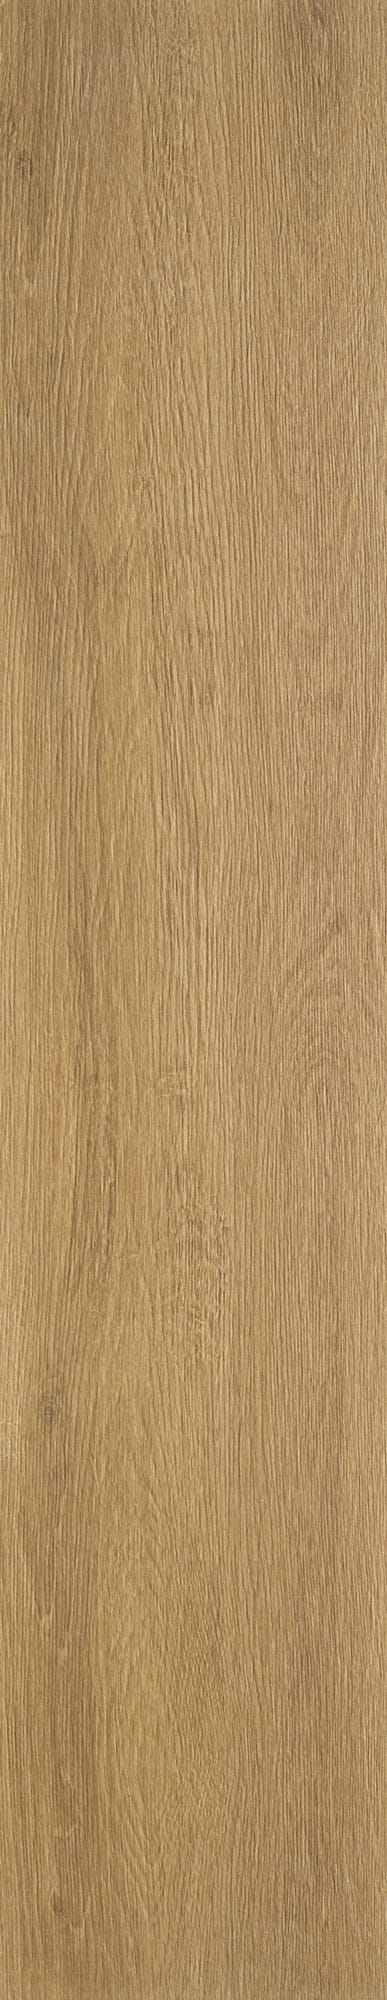 Timber Beige